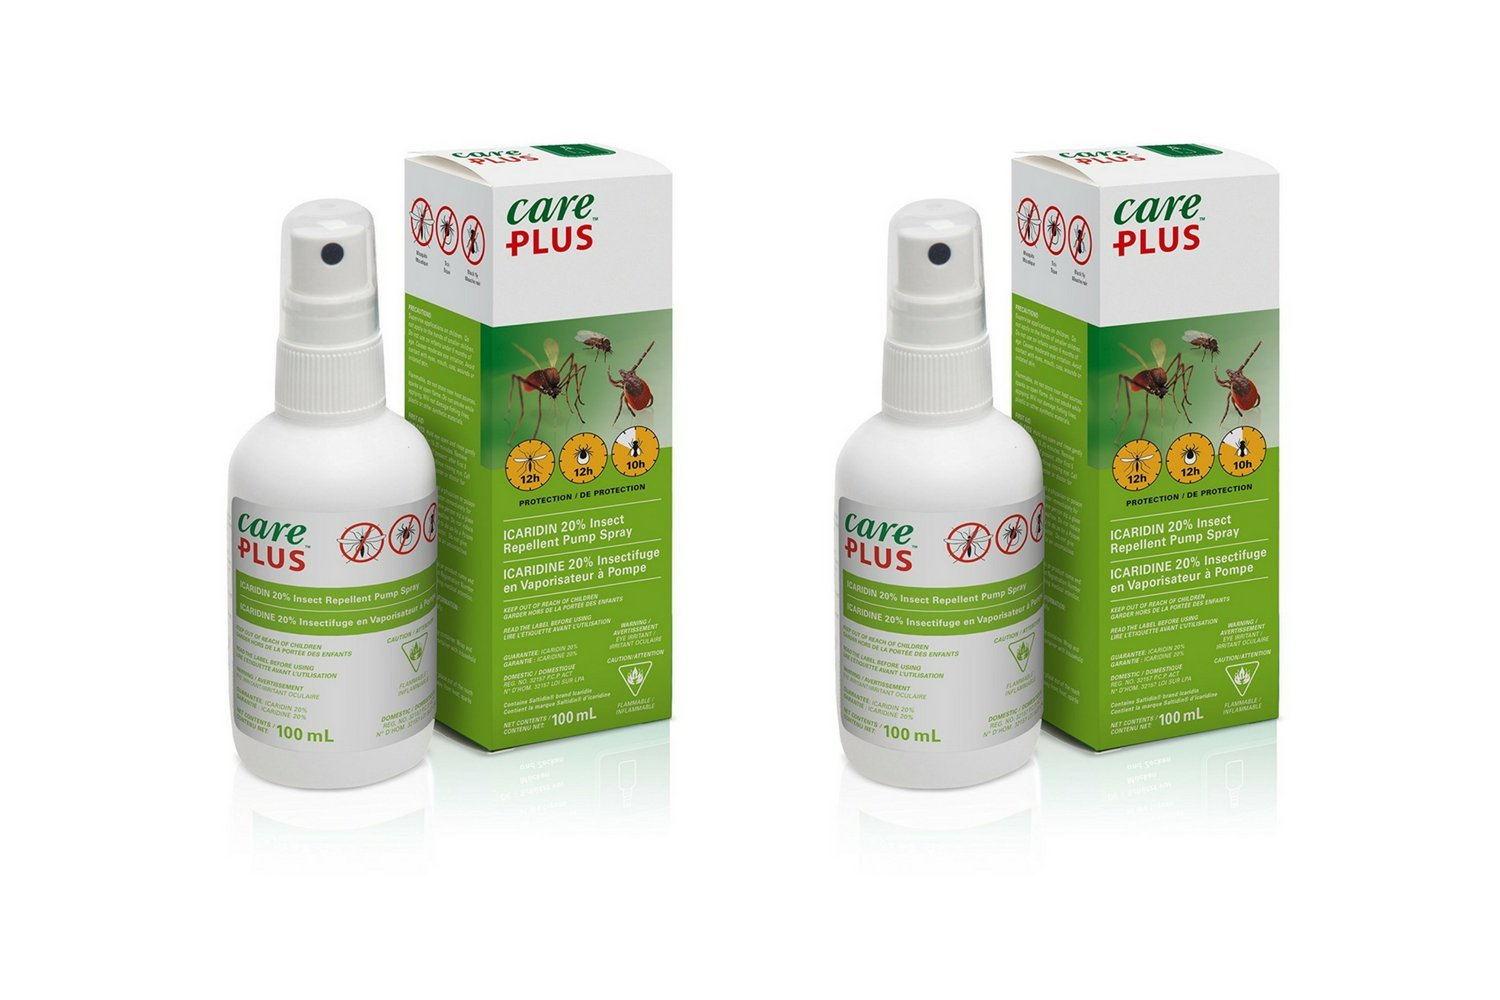 care plus 20% icaridin insect repellent - 100ml spray pump (2-pack) care plus 20% icaridine anti-insectes – 100 ml spray pompe (2-pack)